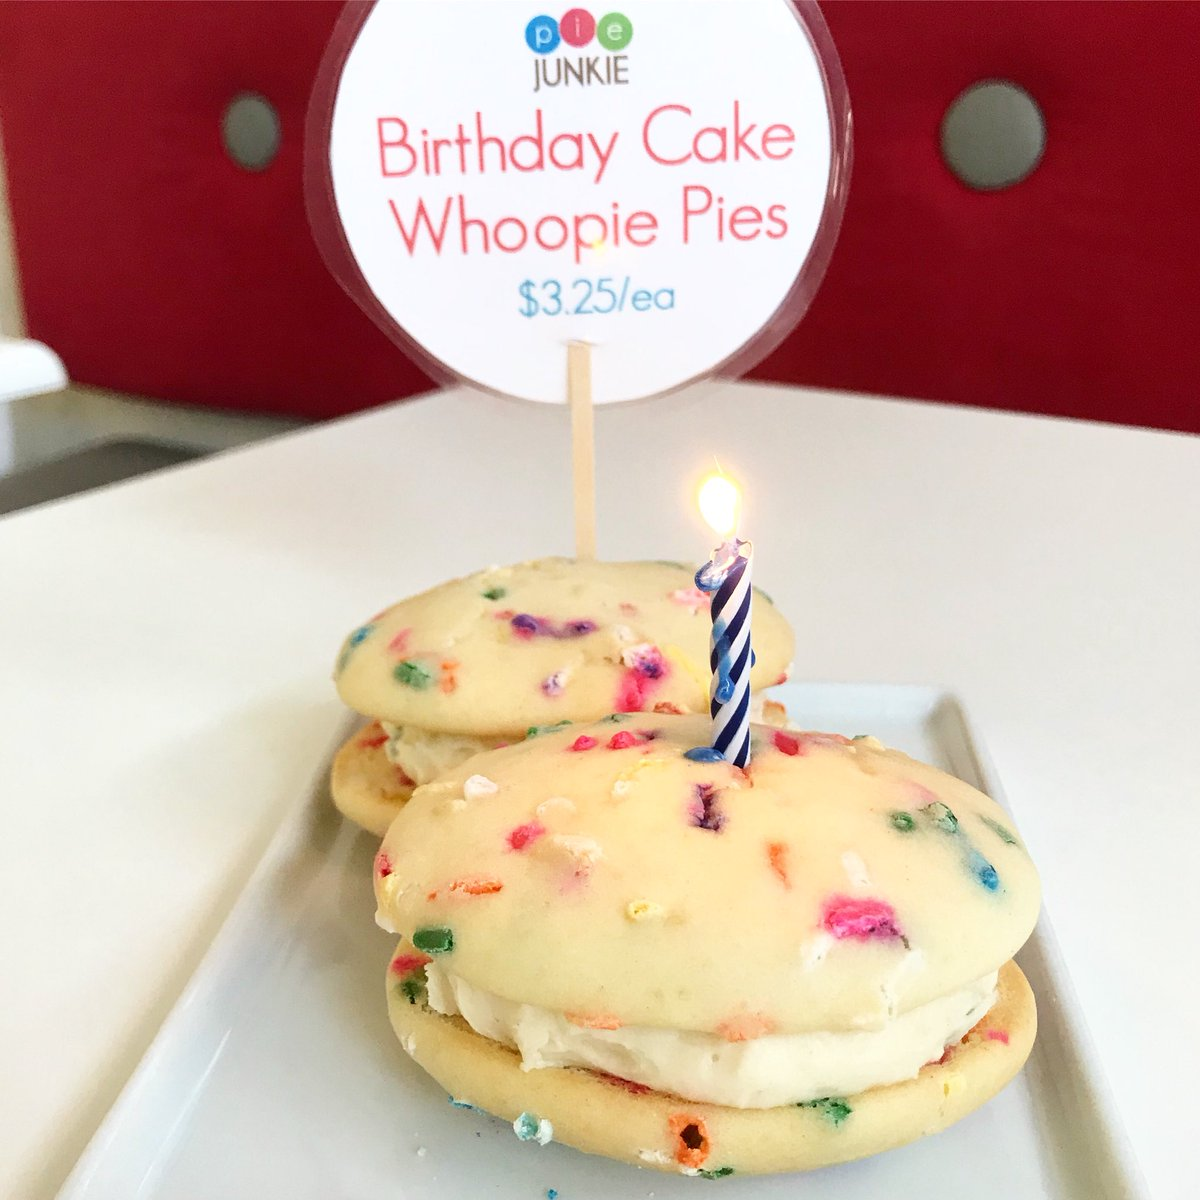 Pie Junkie On Twitter Birthday Cake Whoopie Pies Today